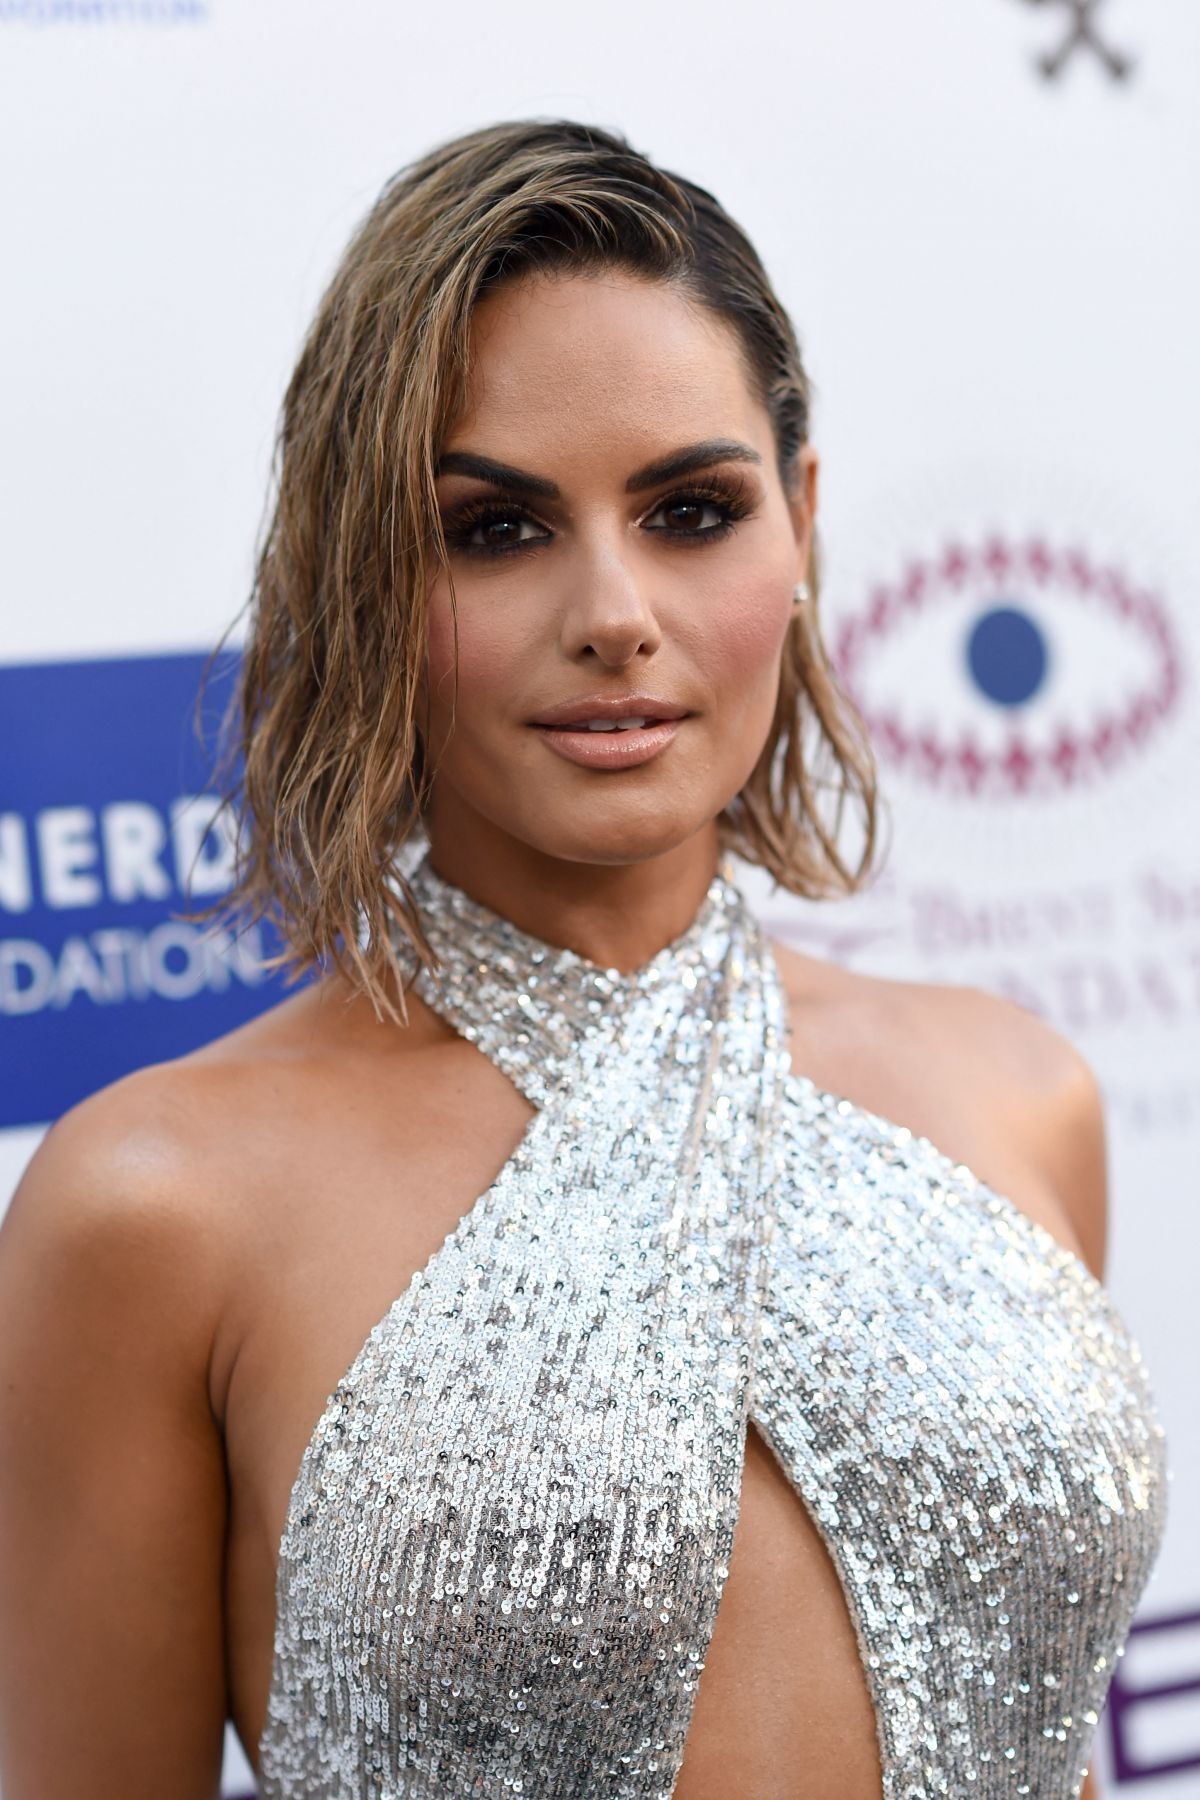 PIA TOSCANO at Brent Shapiro Foundation Summer Spectacular in Los Angeles 09/21/2019 �C HawtCelebs1200 x 1800 jpeg 281kB